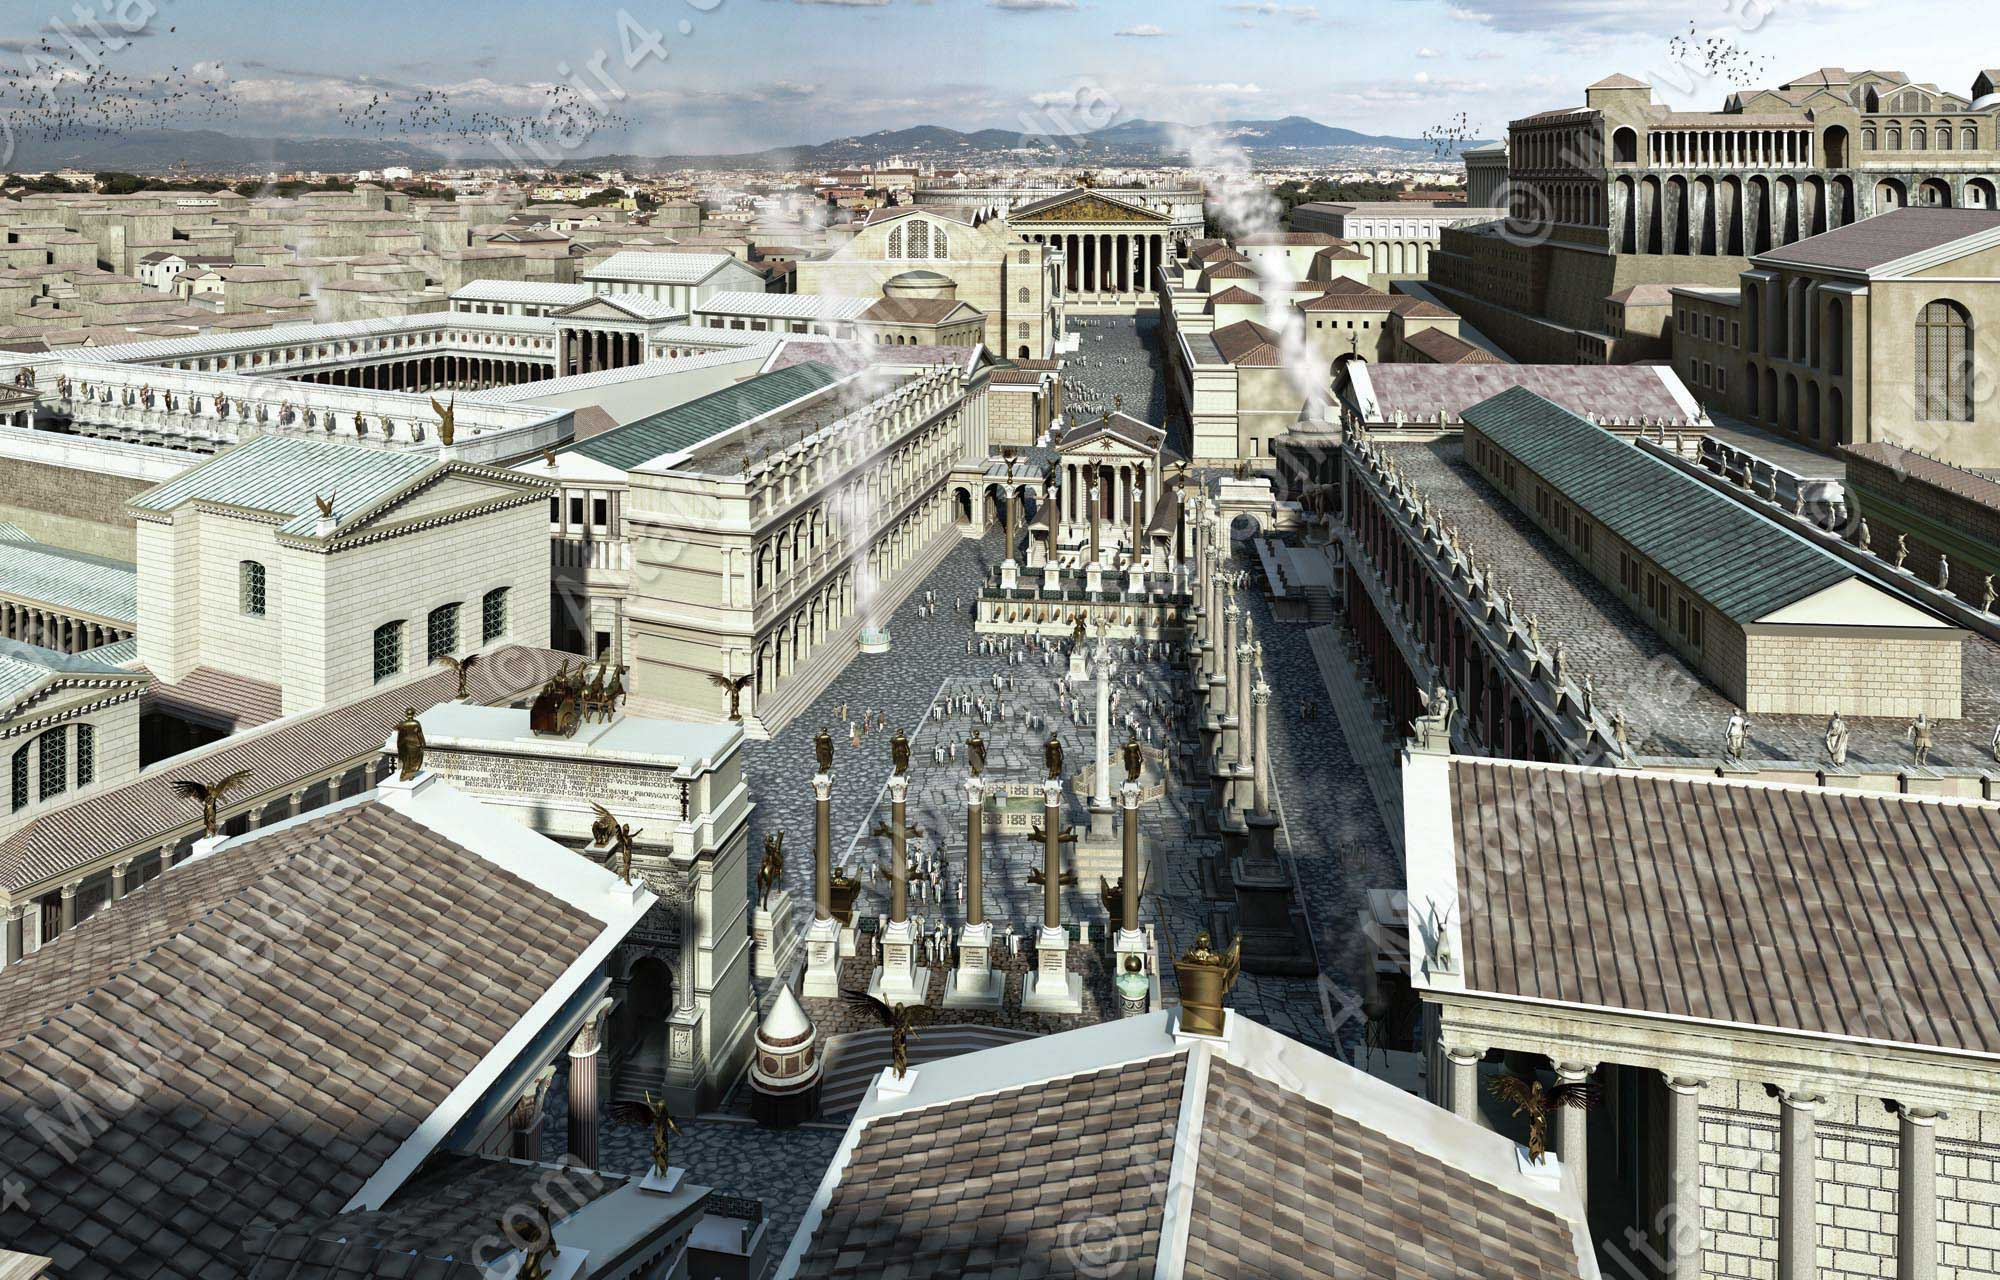 The Forum in Rome depicted as it once looked 2000 years ago clad in Carrara Marble.